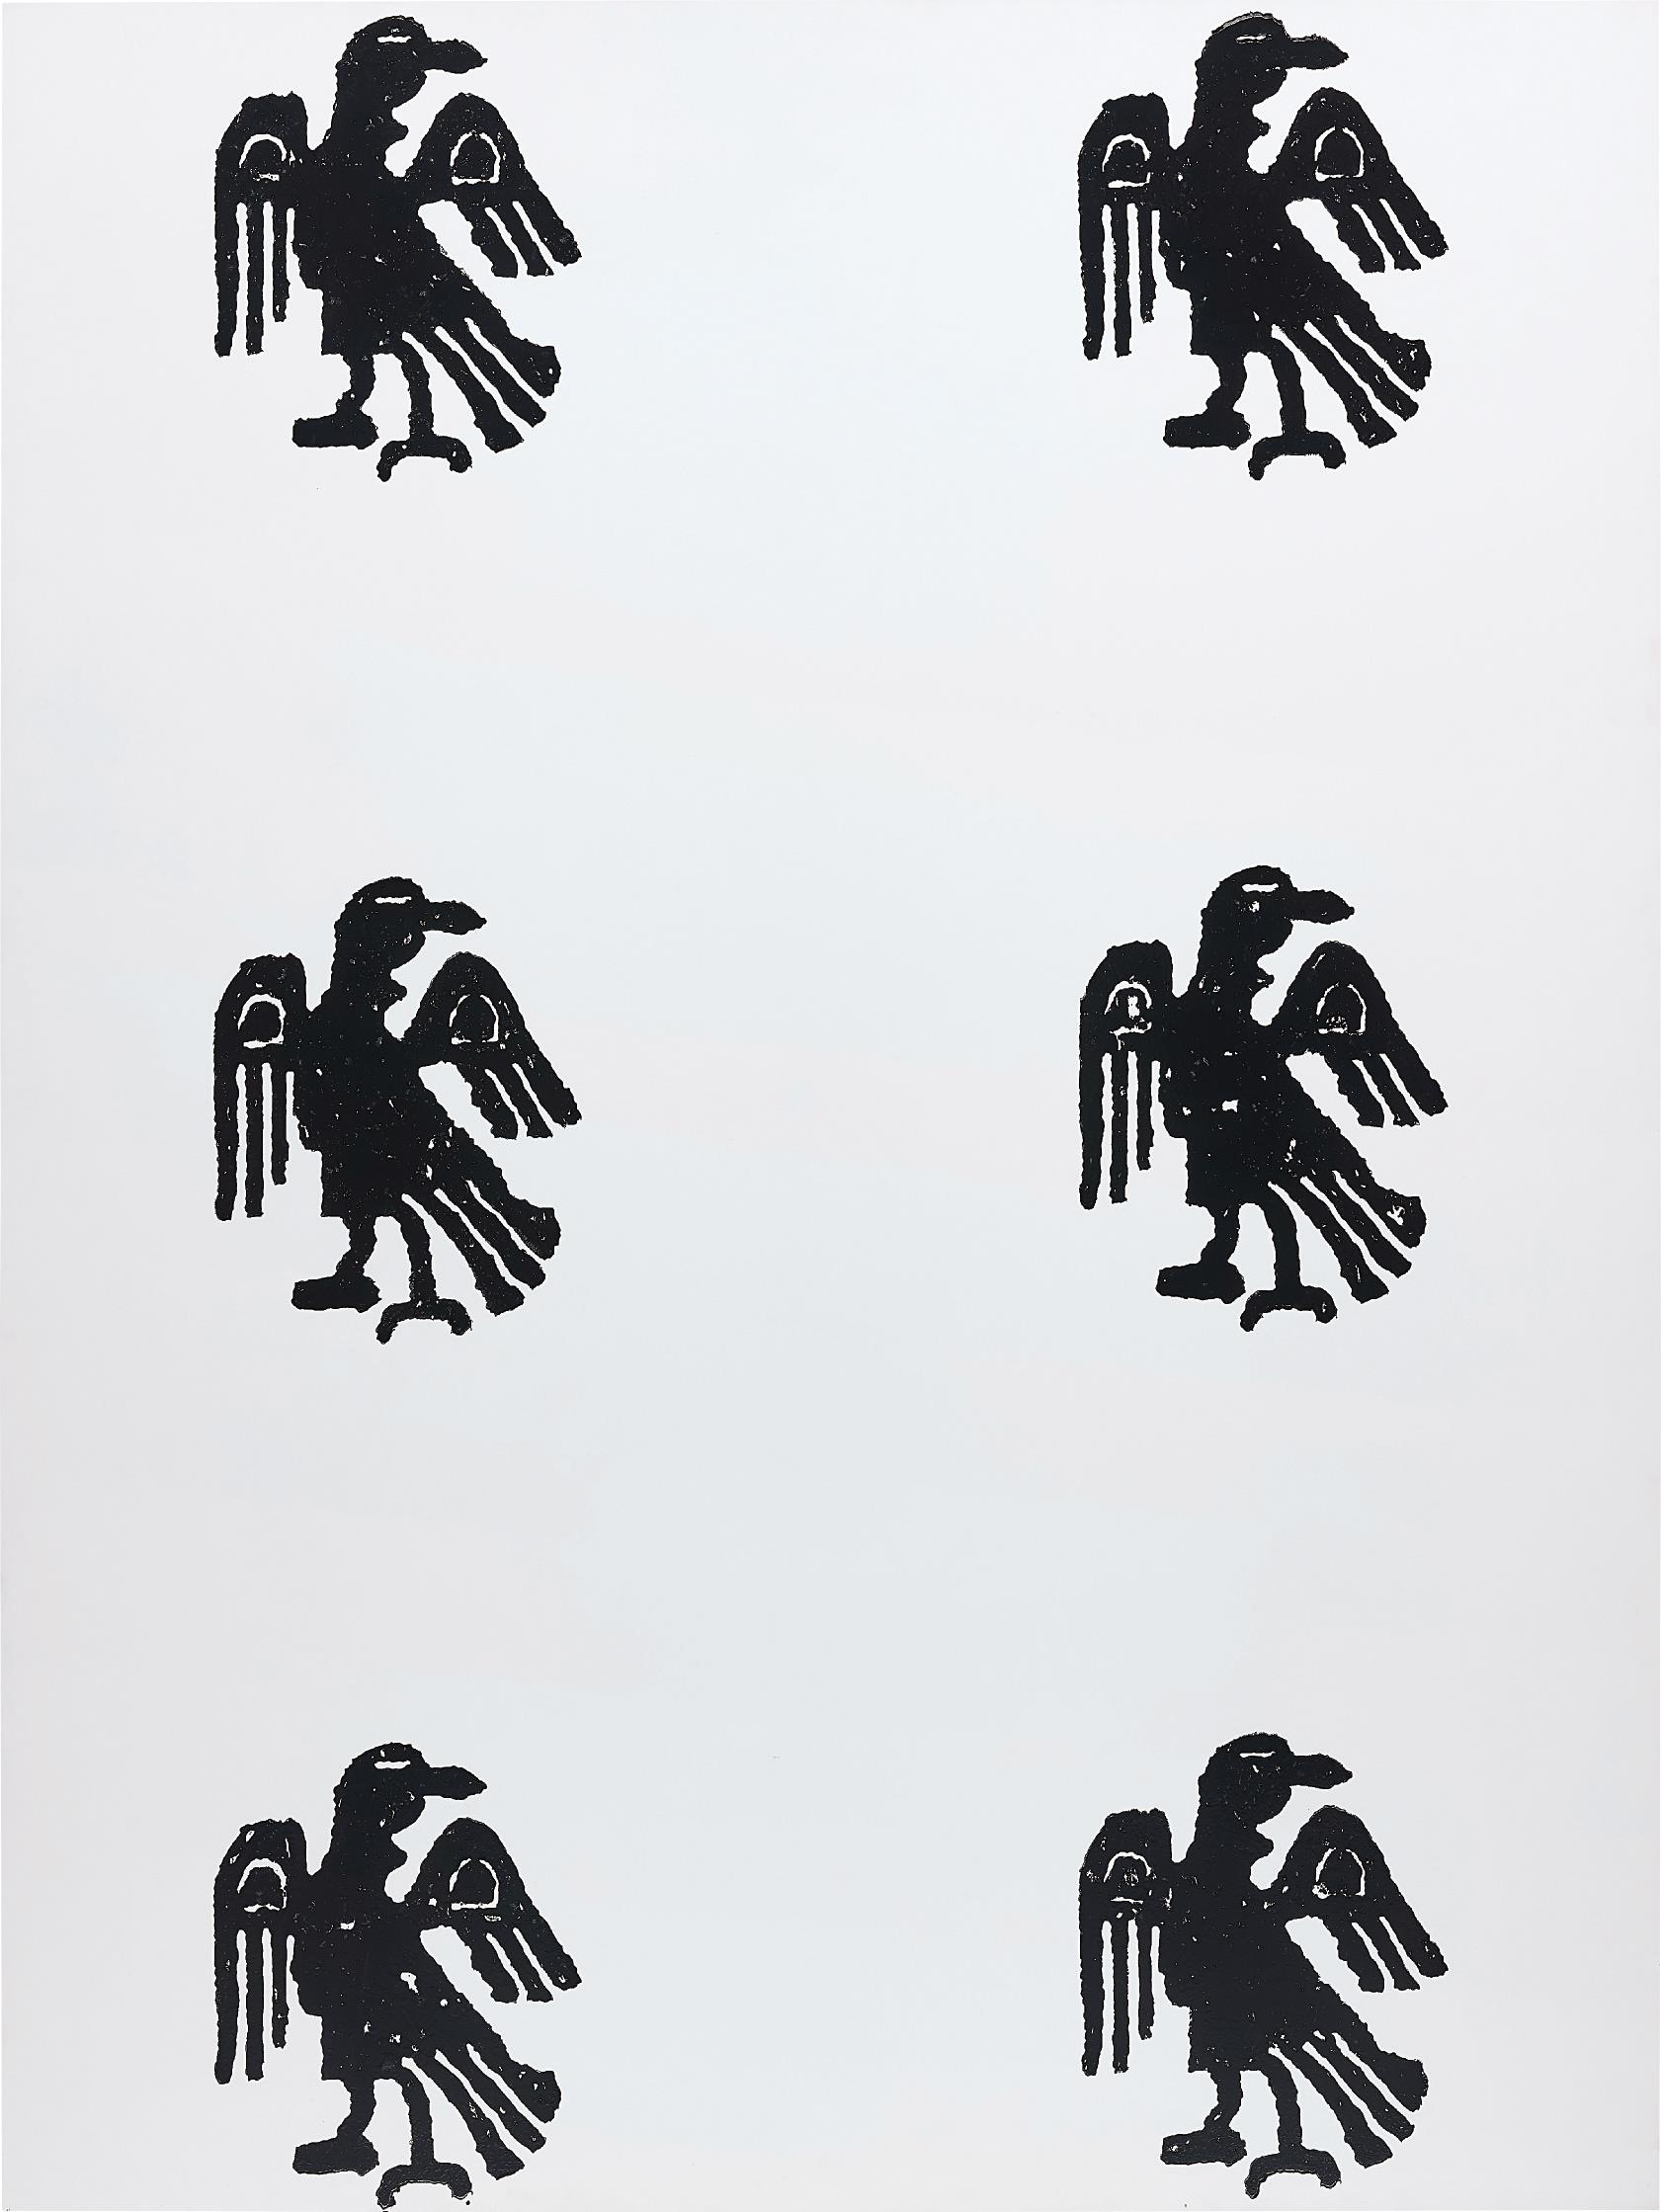 Christopher Wool-Untitled-1989